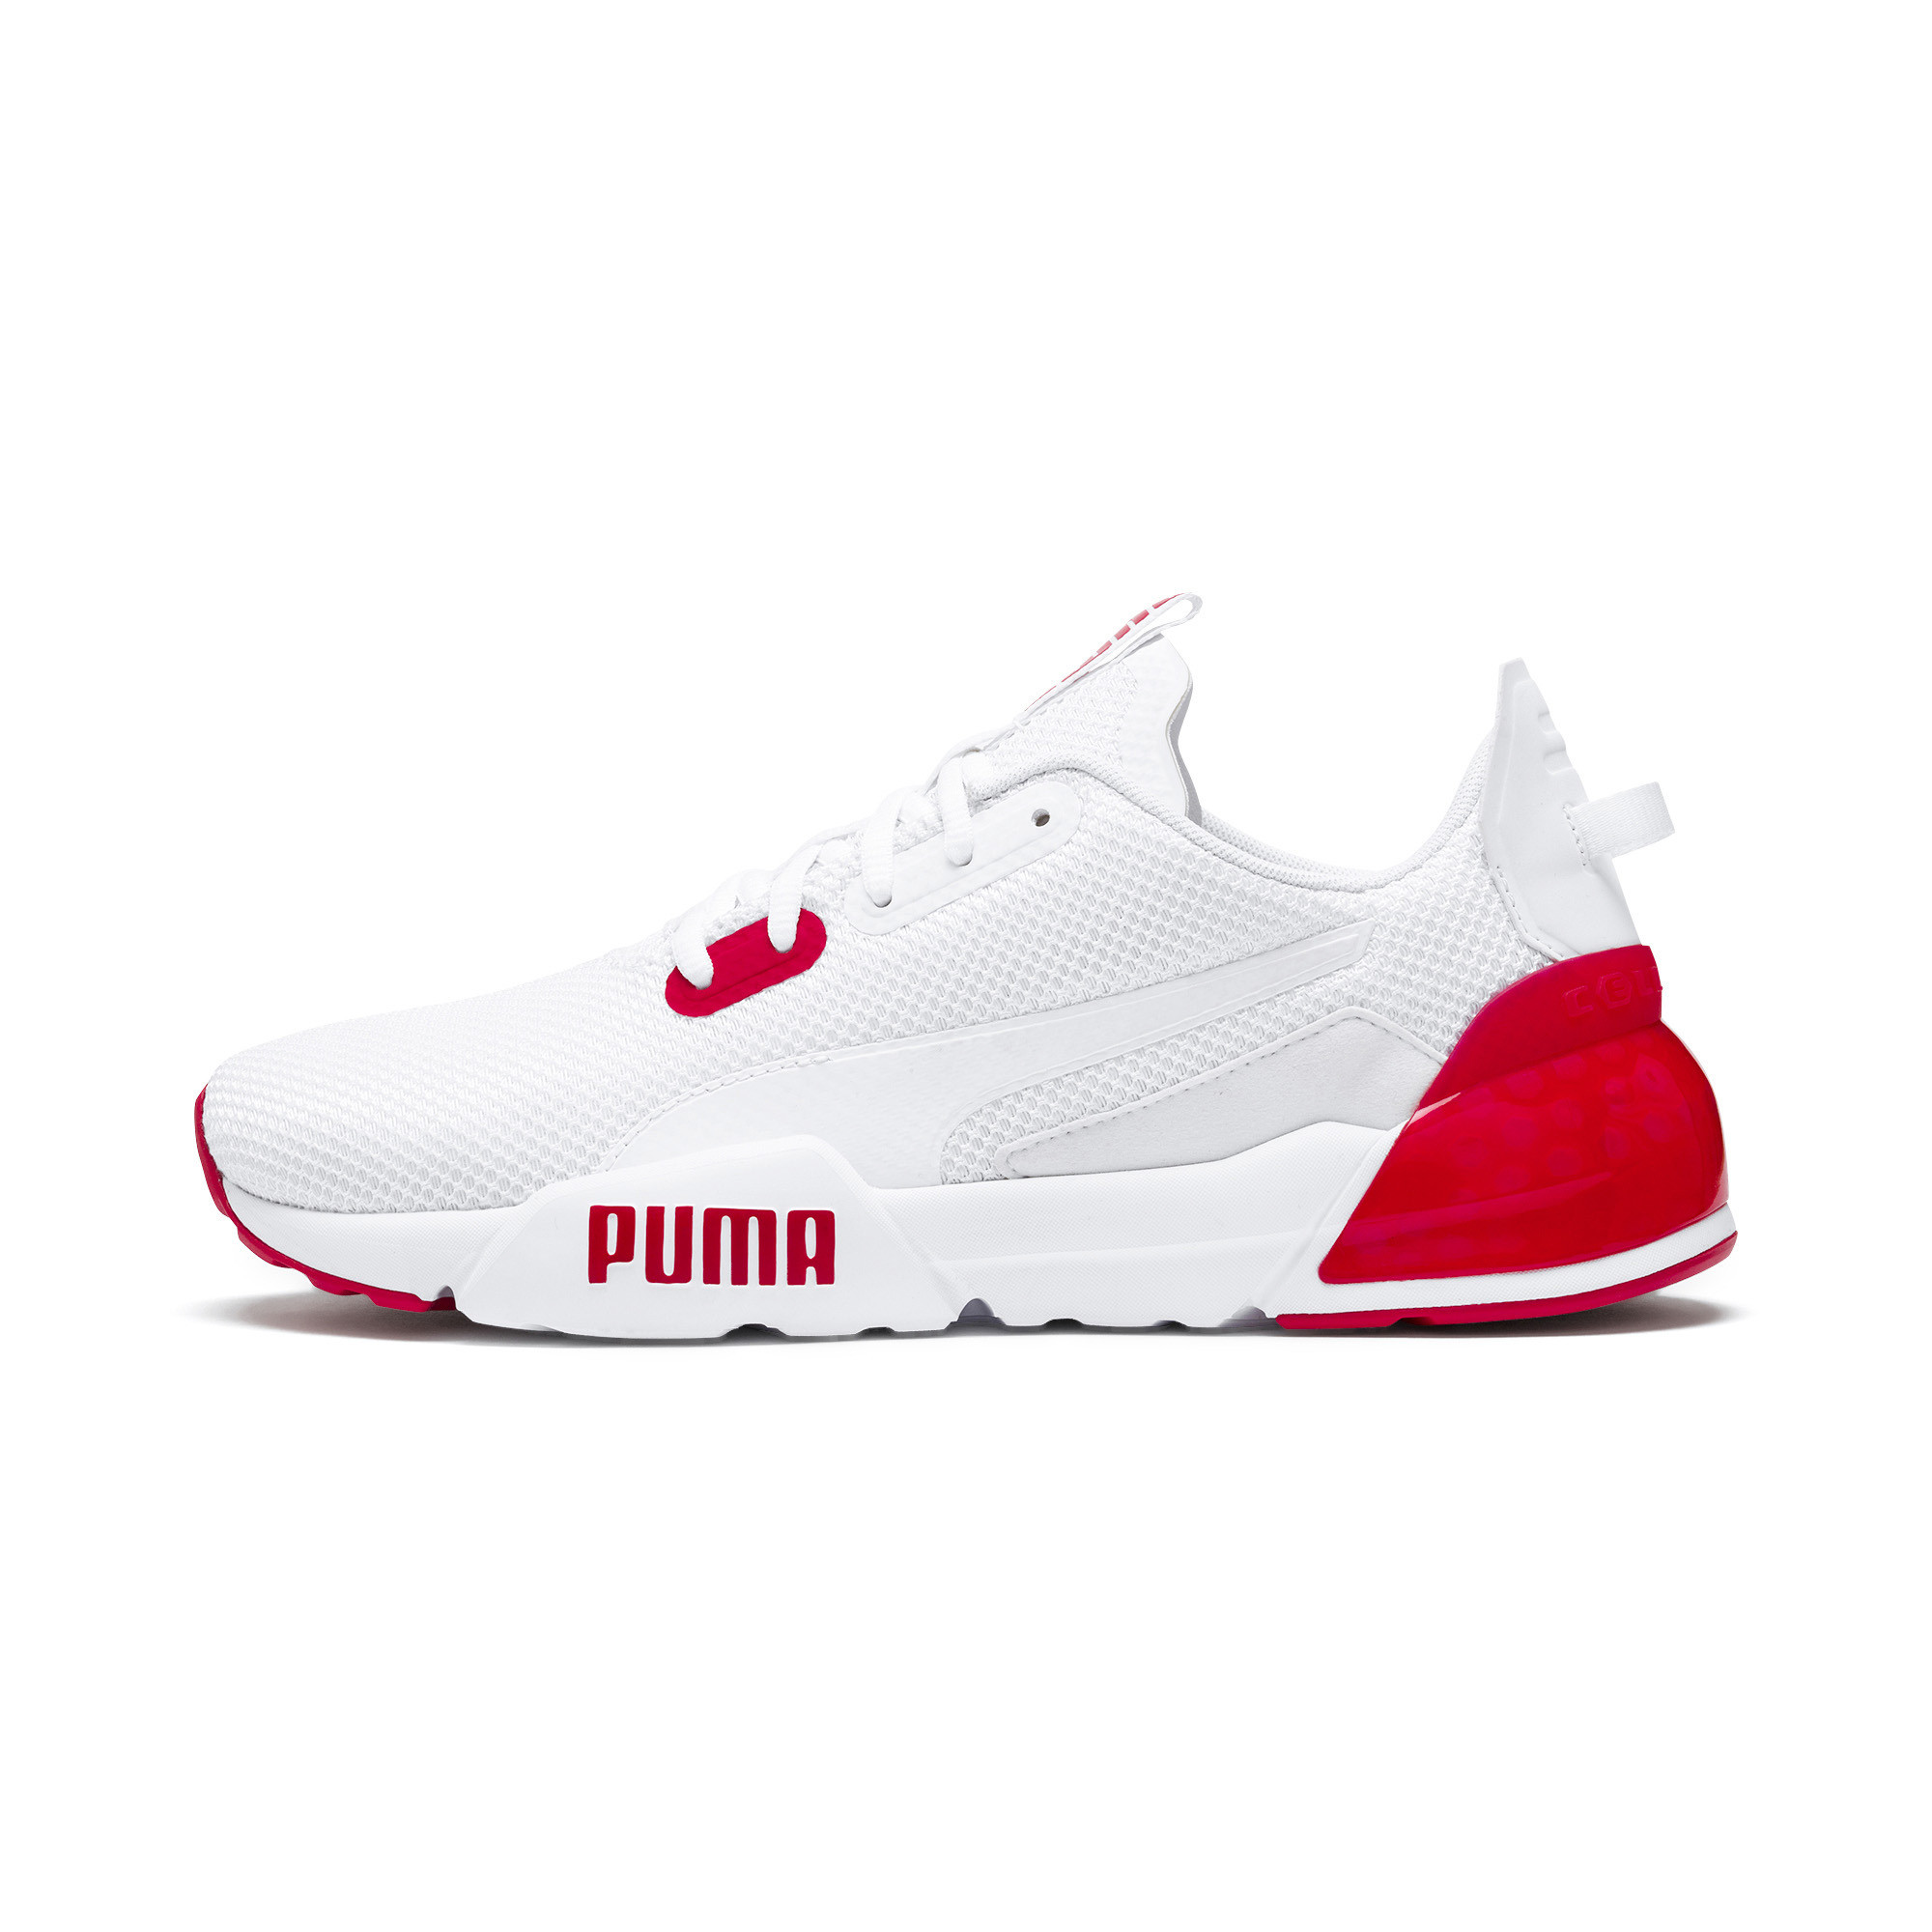 PUMA-Men-039-s-CELL-Phase-Training-Shoes thumbnail 16